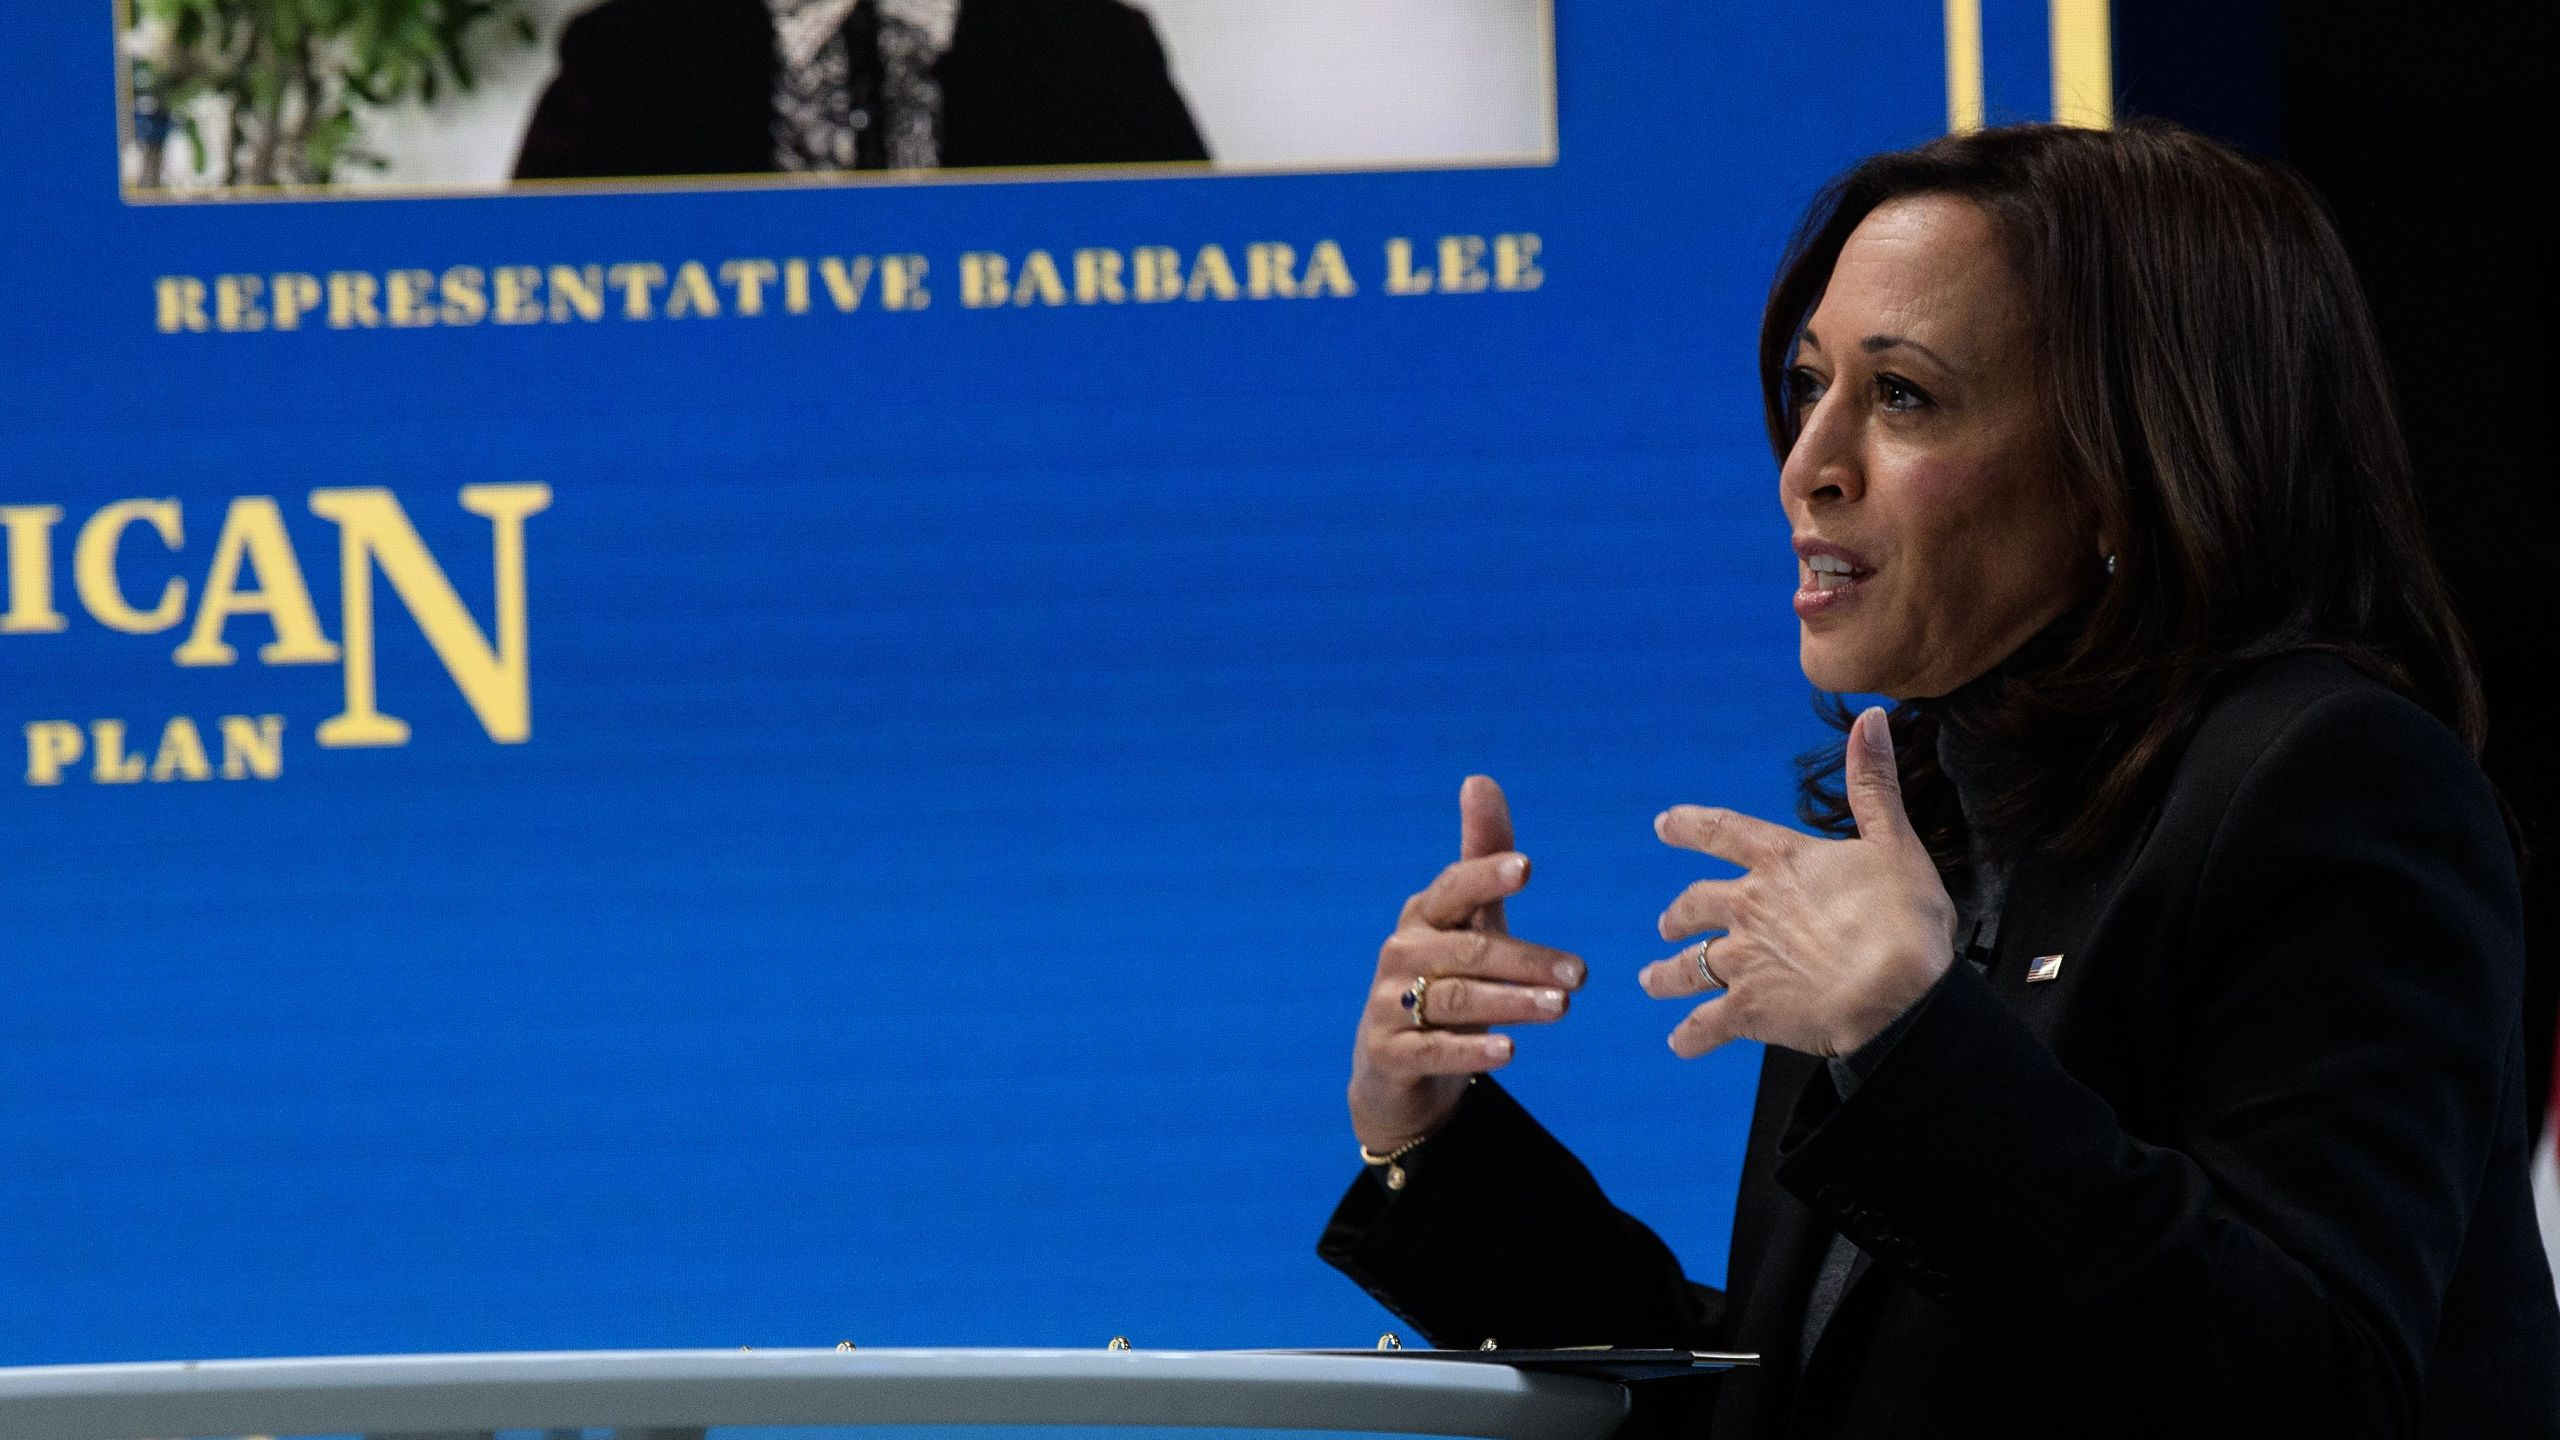 Vice President Kamala Harris speaks during a virtual roundtable with lawmakers and women leaders from advocacy organizations, in Washington, DC, on February 18, 2021. (NICHOLAS KAMM/AFP via Getty Images)